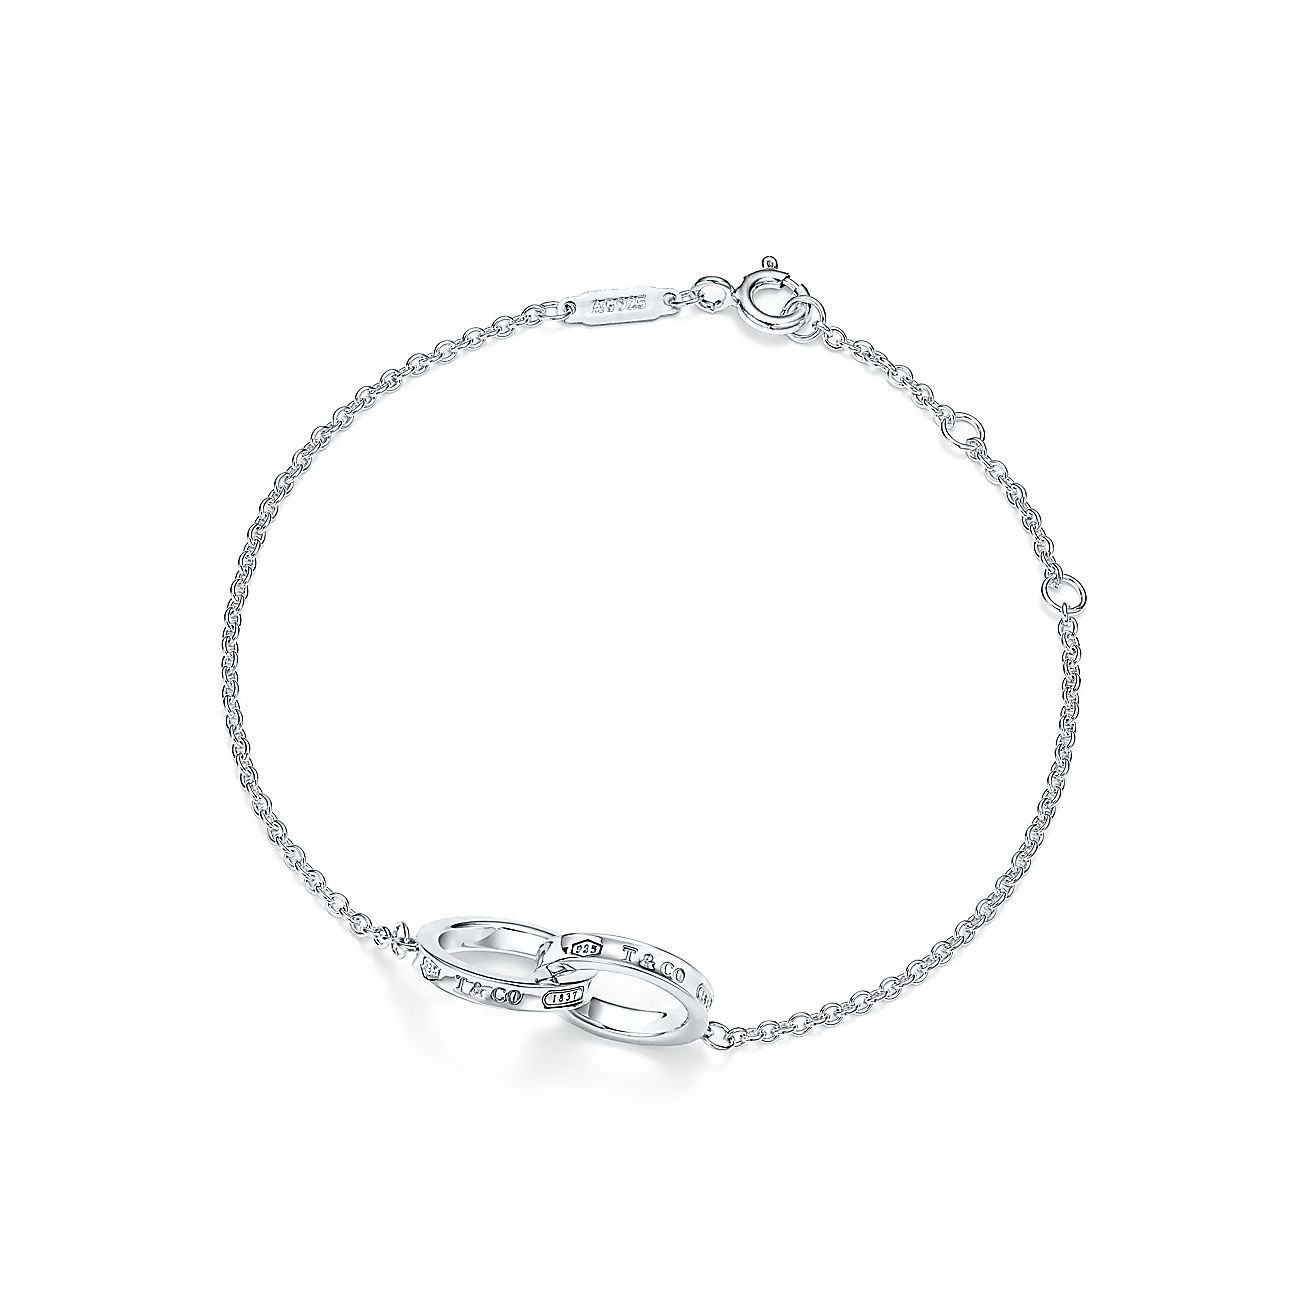 Tiffany 1837 Interlocking Circles Bracelet In Sterling Silver Co